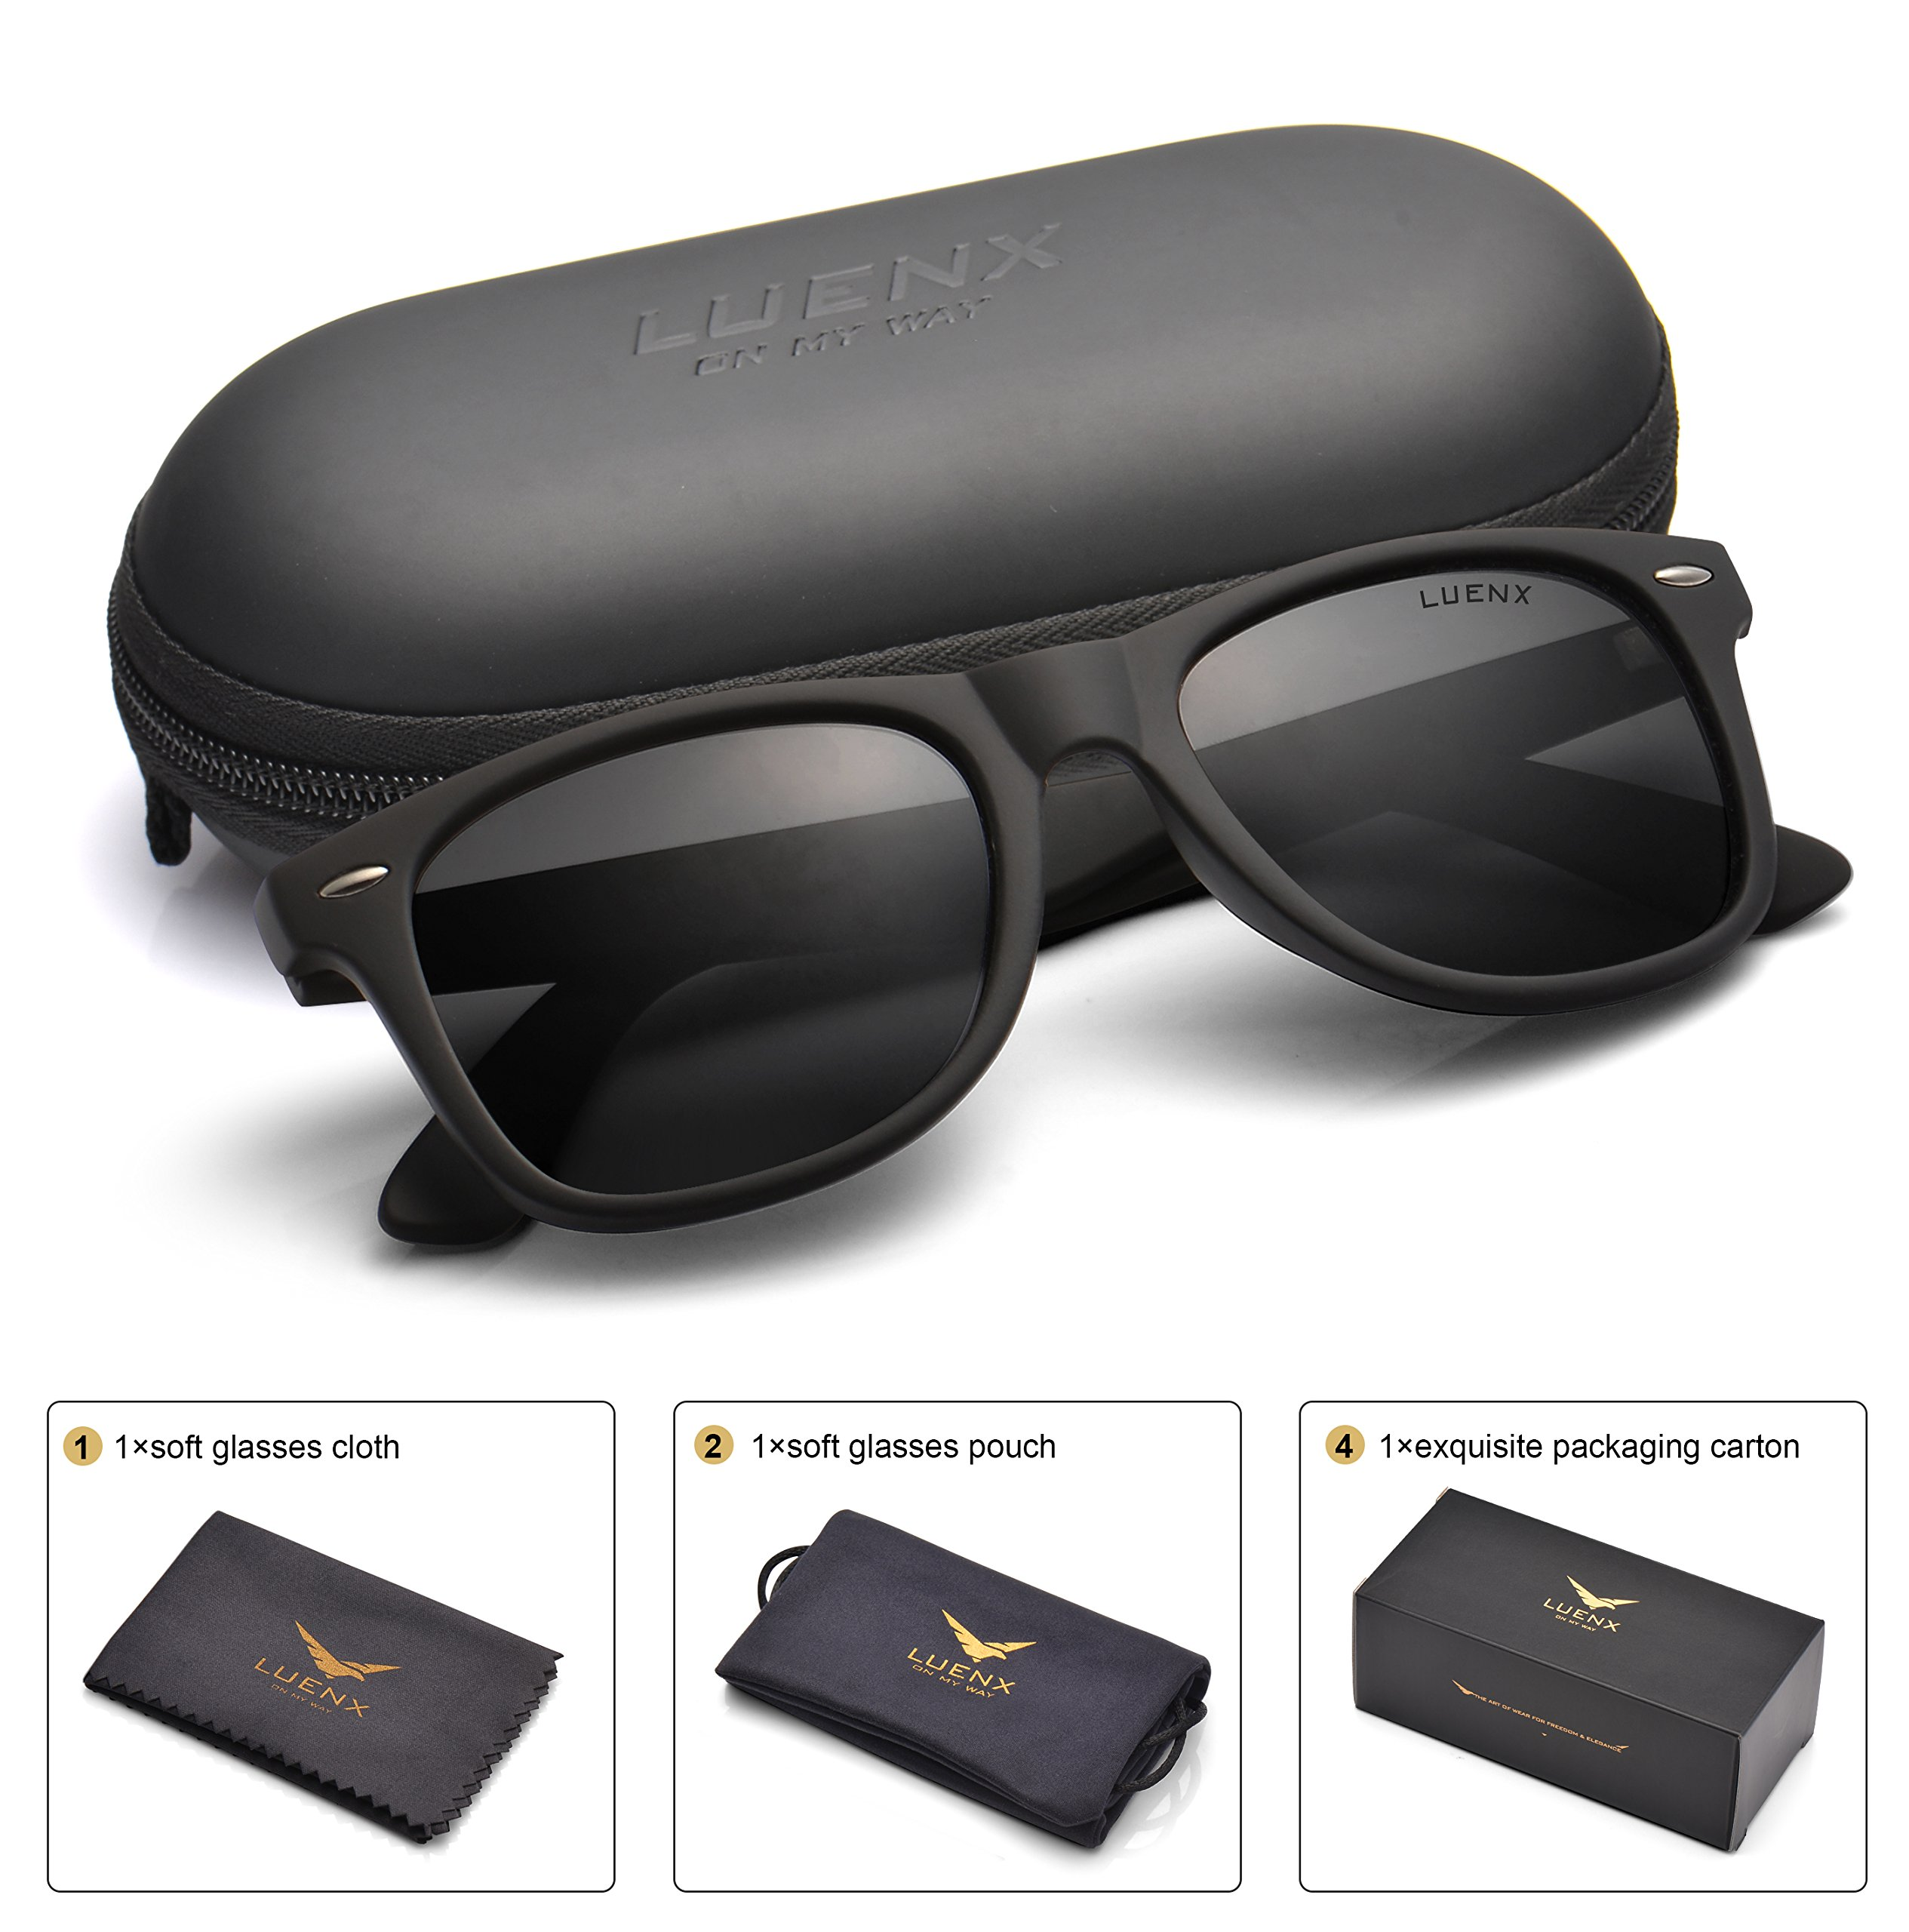 5936c6362139 Get Quotations · Mens Wayfarer Sunglasses Polarized Womens: UV 400  Protection,by LUENX with Case